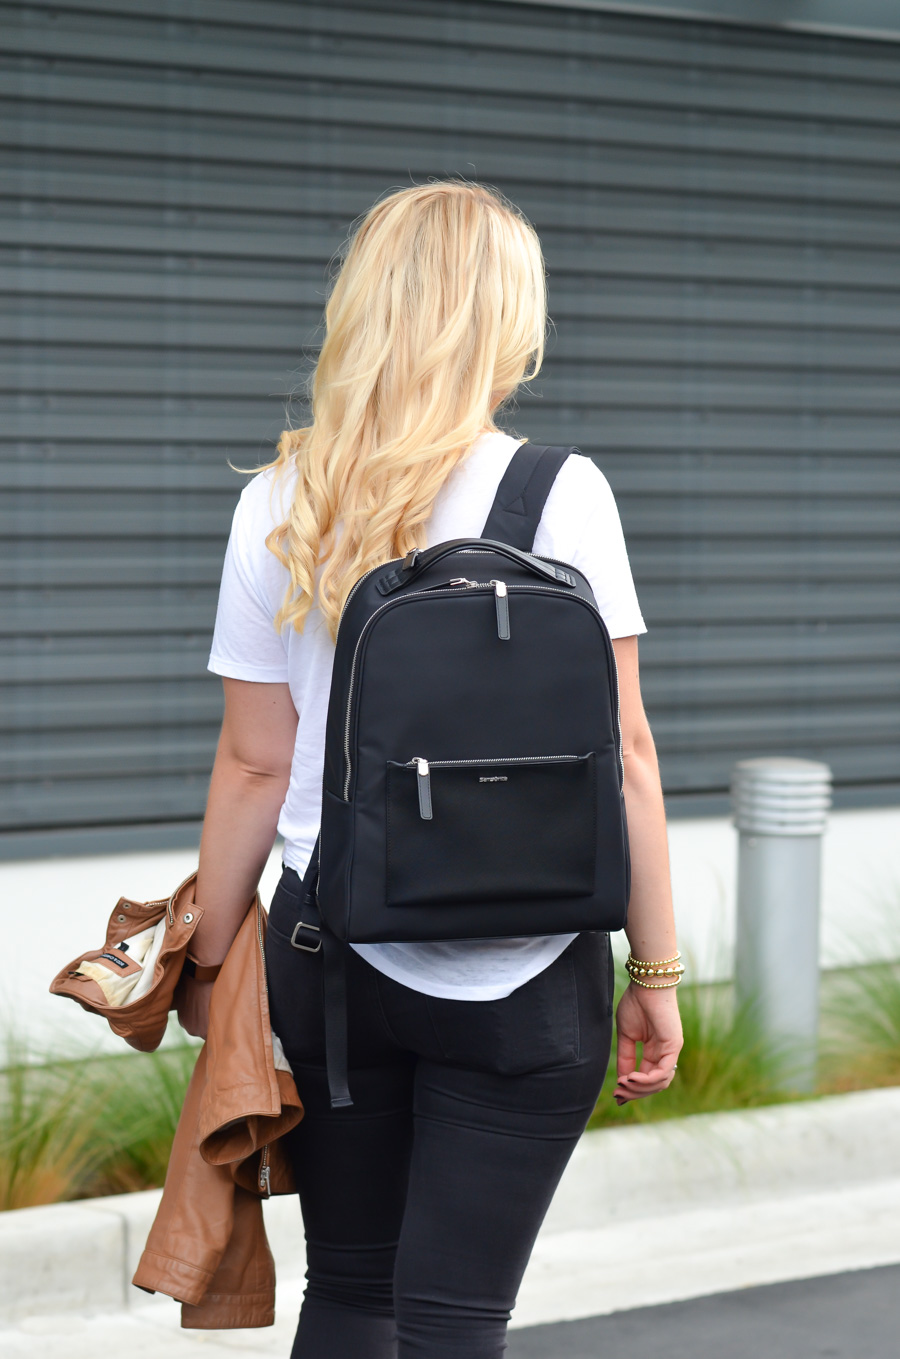 Best Travel Bags for Stylish Women. Chic Work Laptop Backpack - Samsonite Zalia Backpack Review